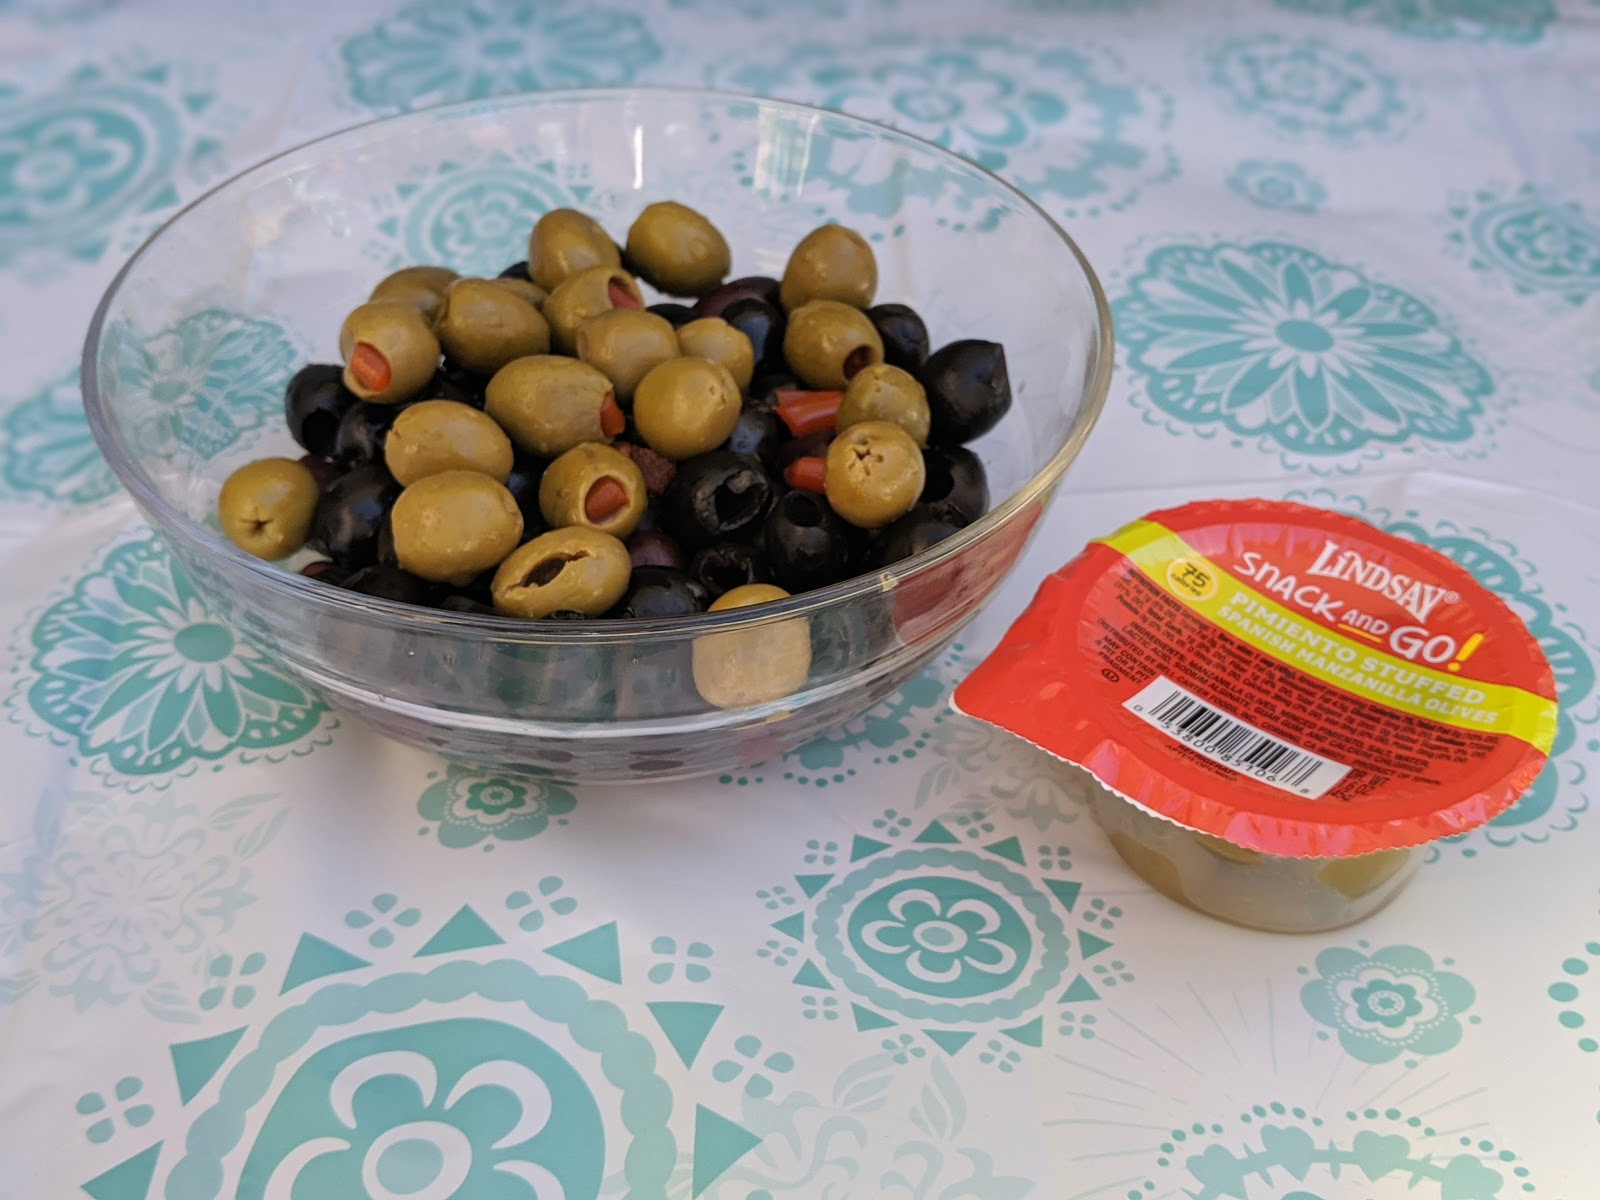 Olives pack and go